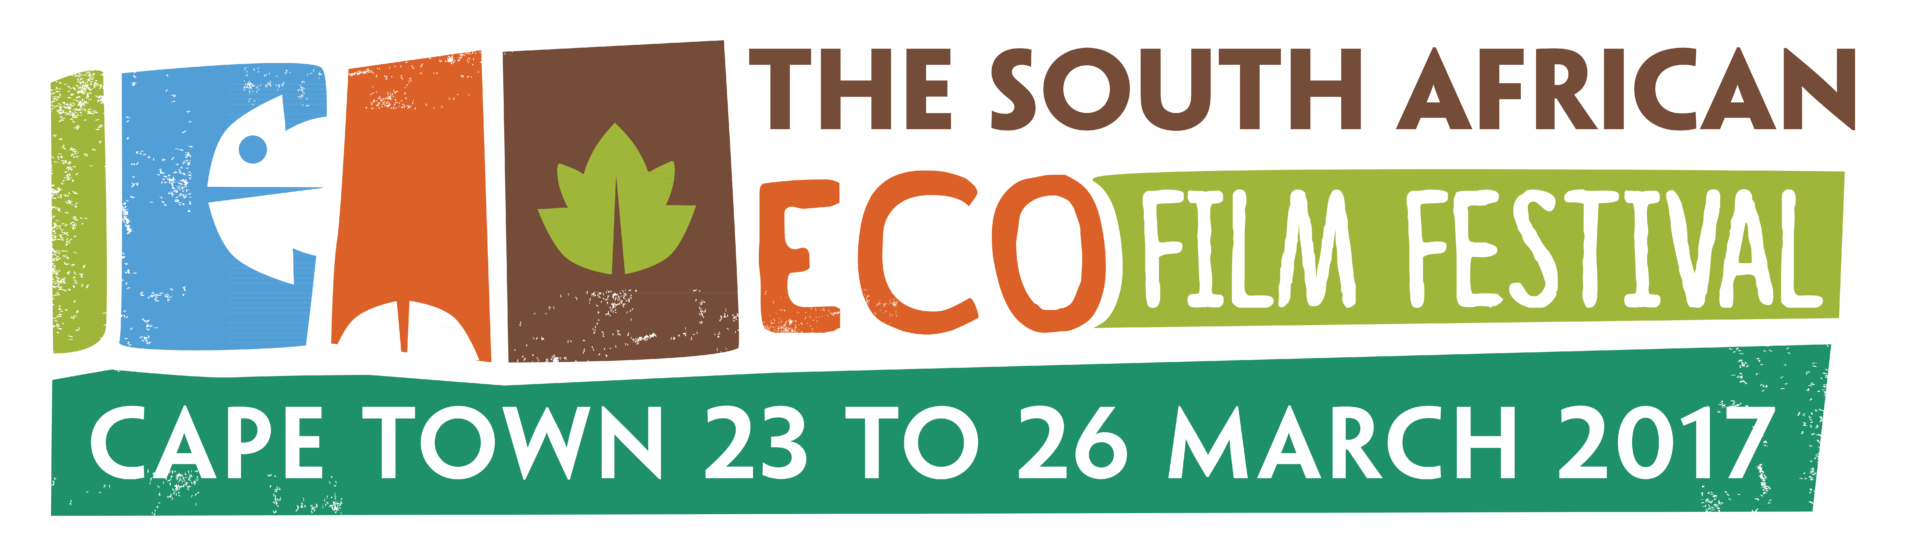 Variation of the logo design created for the Eco Film festival to serve as a banner for web use